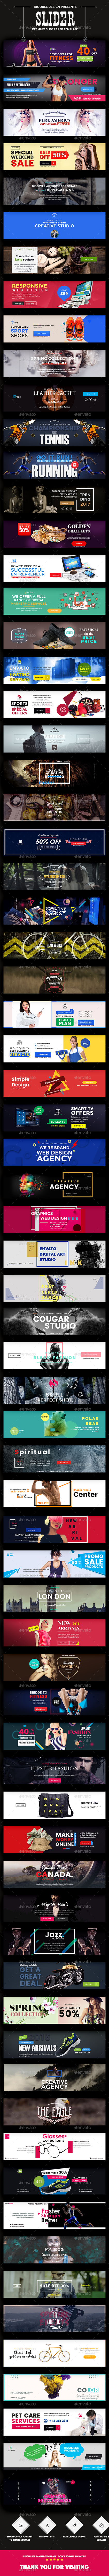 Promotion Sliders - 72 PSD - Sliders & Features Web Elements